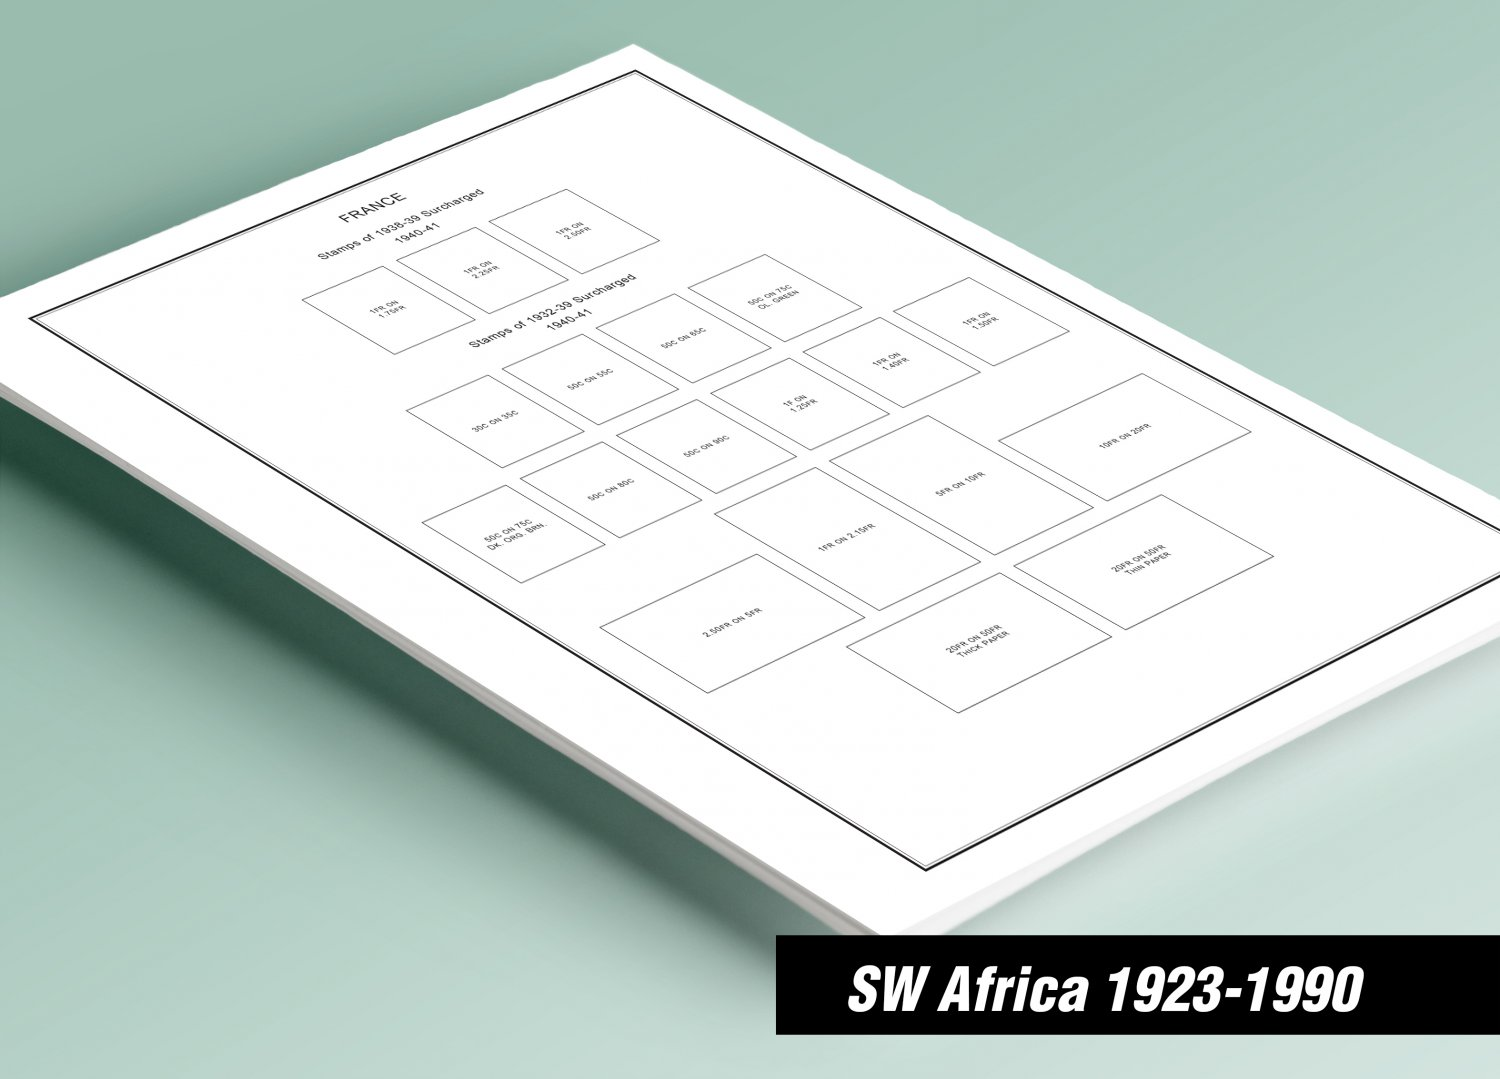 PRINTED SOUTH WEST AFRICA 1923-1990 STAMP ALBUM PAGES (62 pages)